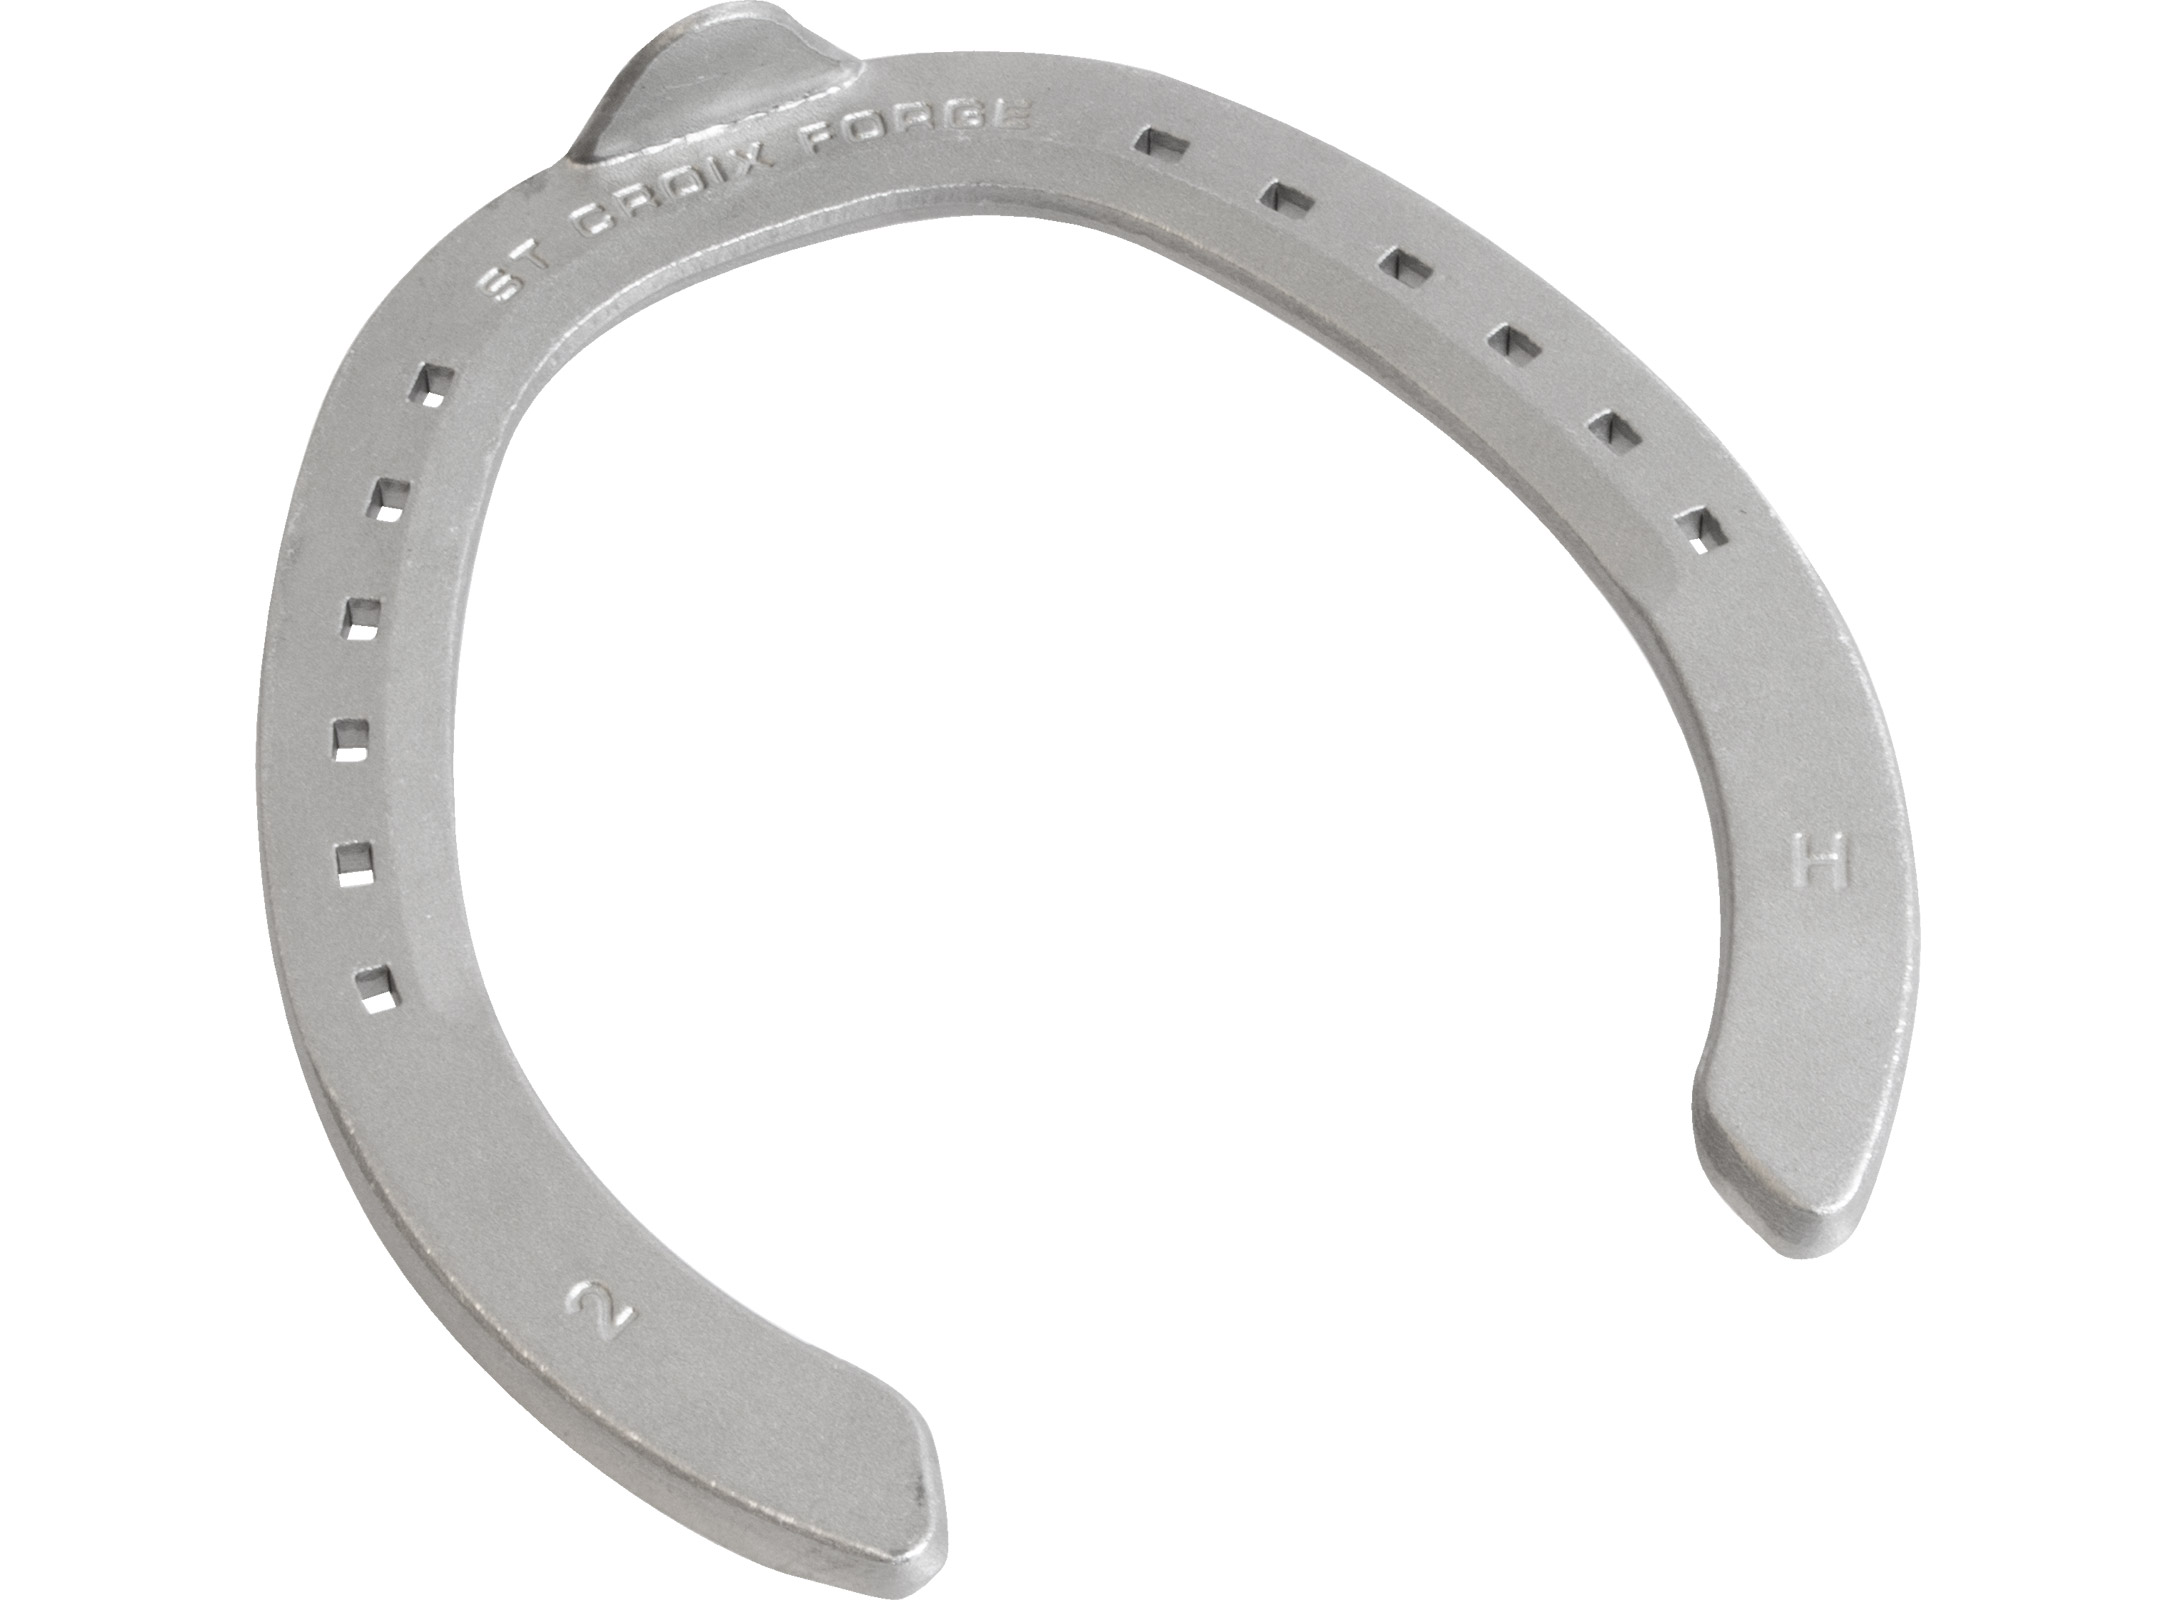 St. Croix Rapid Fullered Aluminium horseshoe, hoof side view